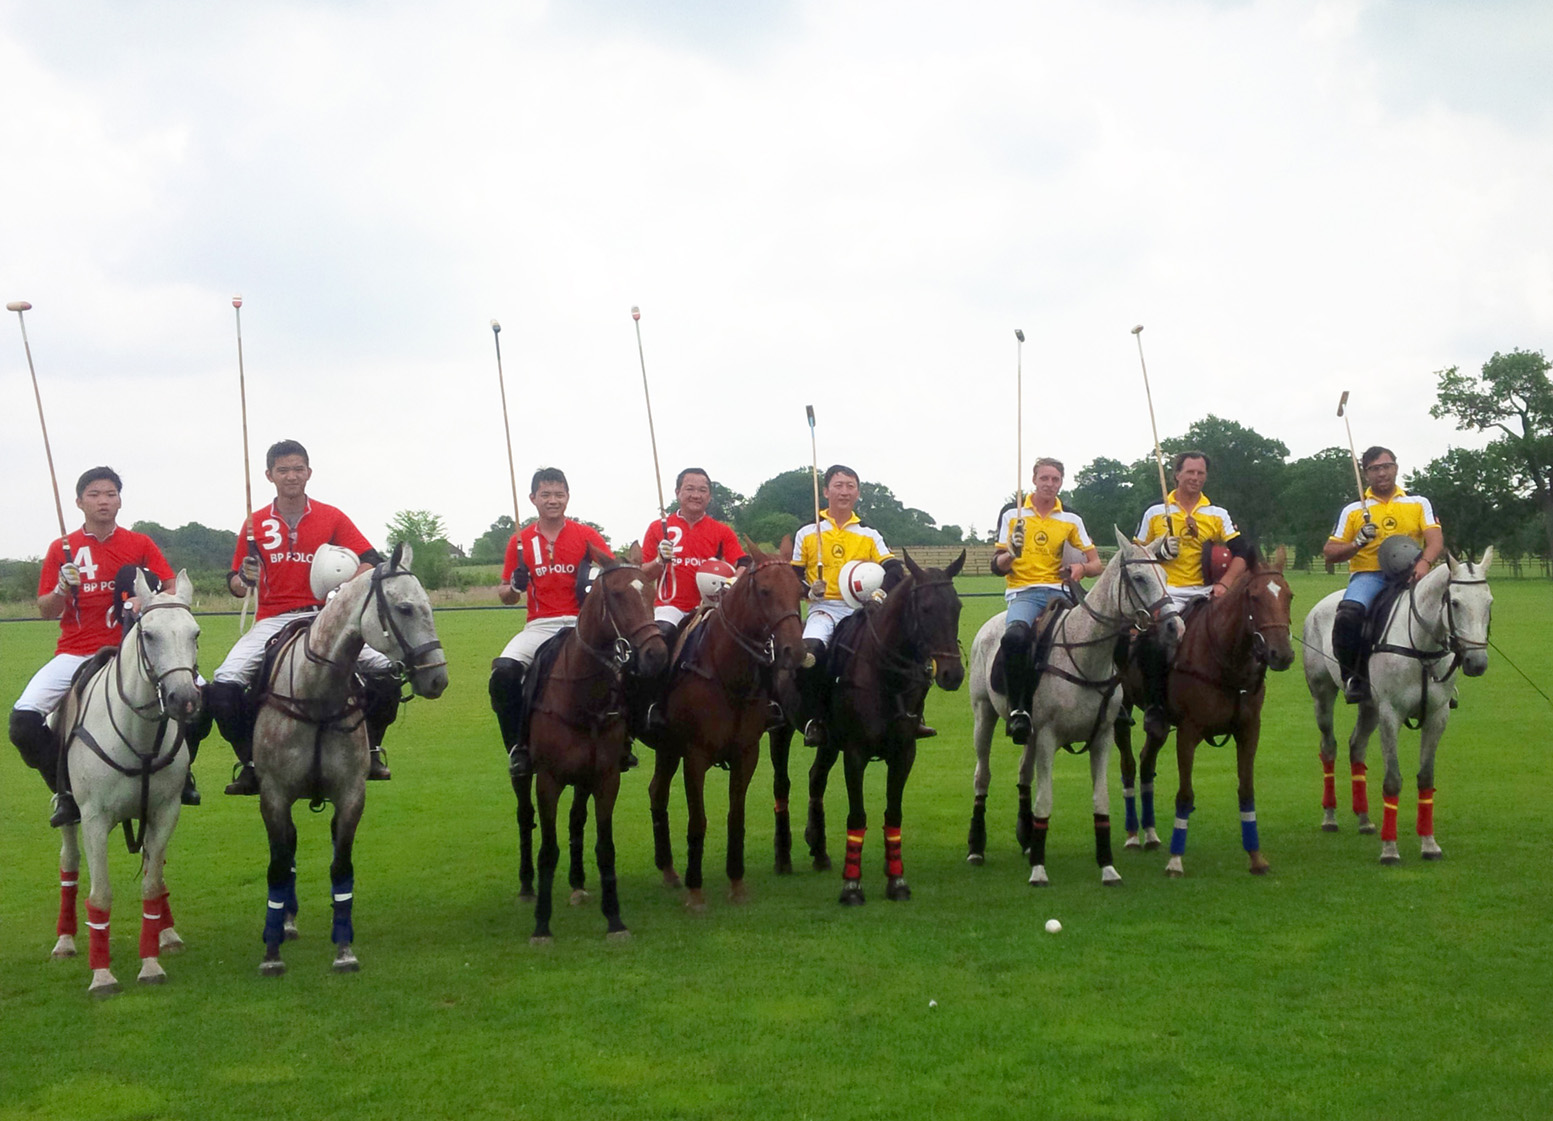 BP Polo vs Tang Polo Beijing in a Friendly Match Held in England